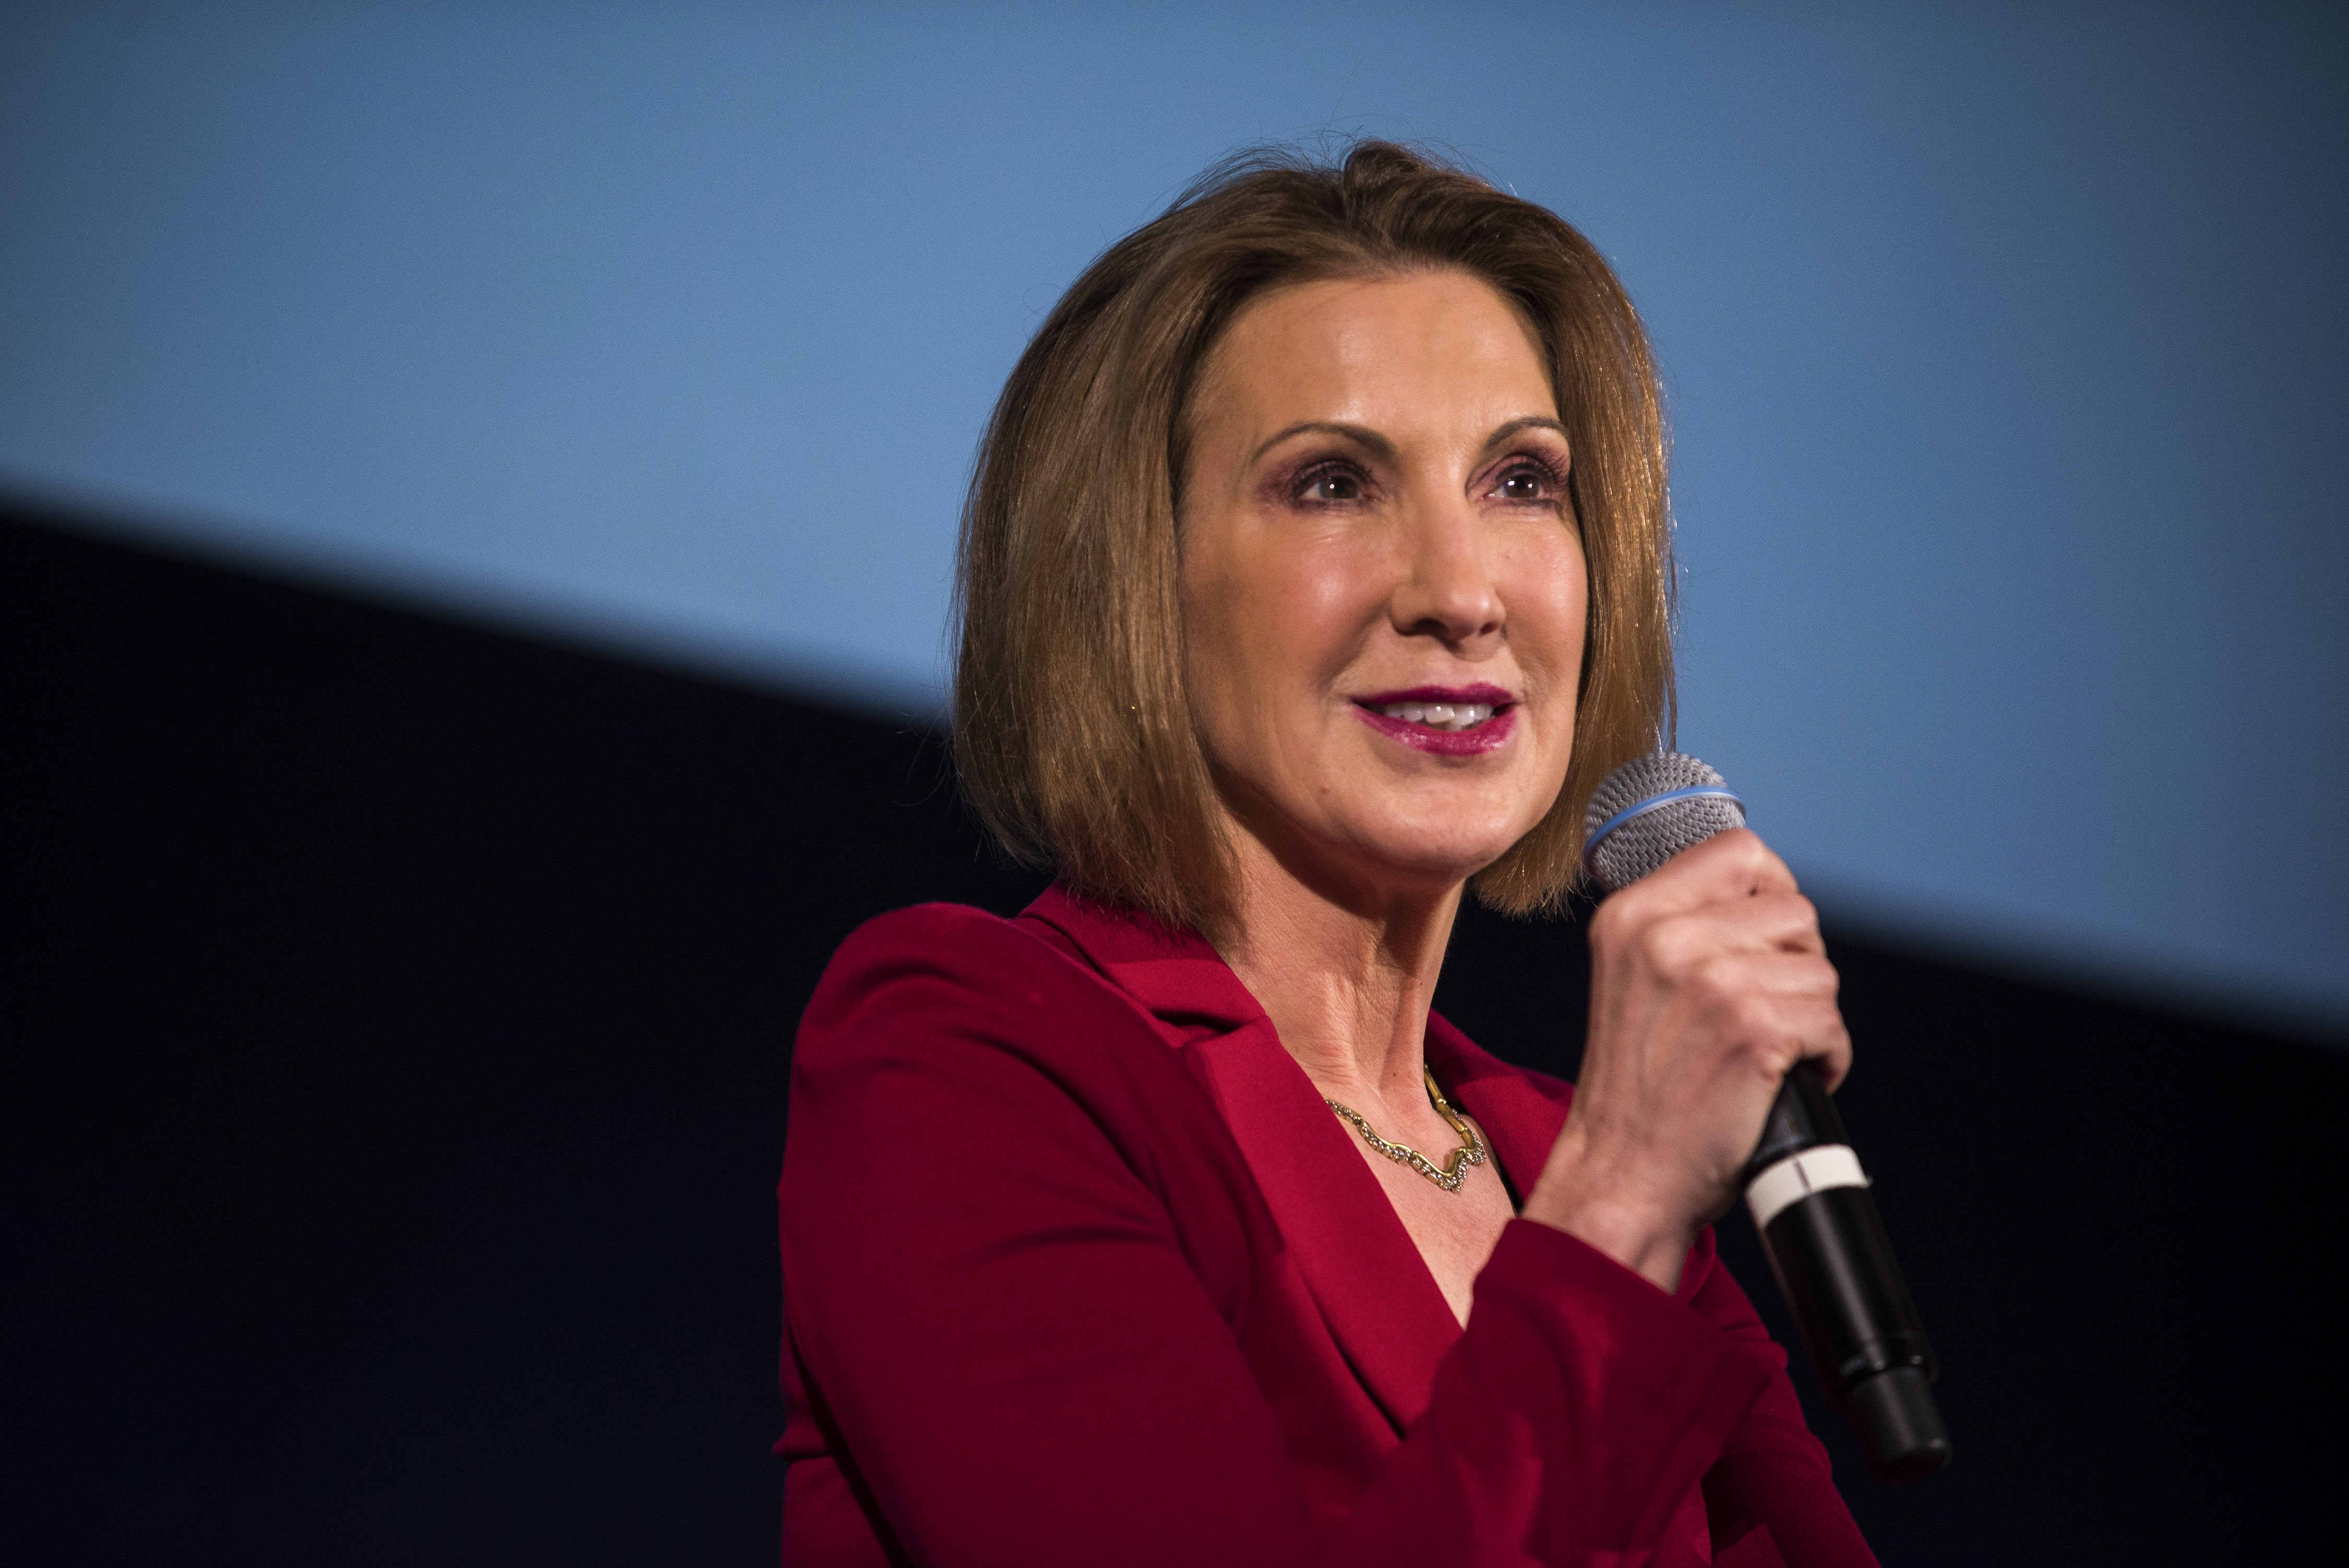 Carly Fiorina, former chief executive of Hewlett-Packard, will seek the GOP nomination for president in 2016. (New York Times)